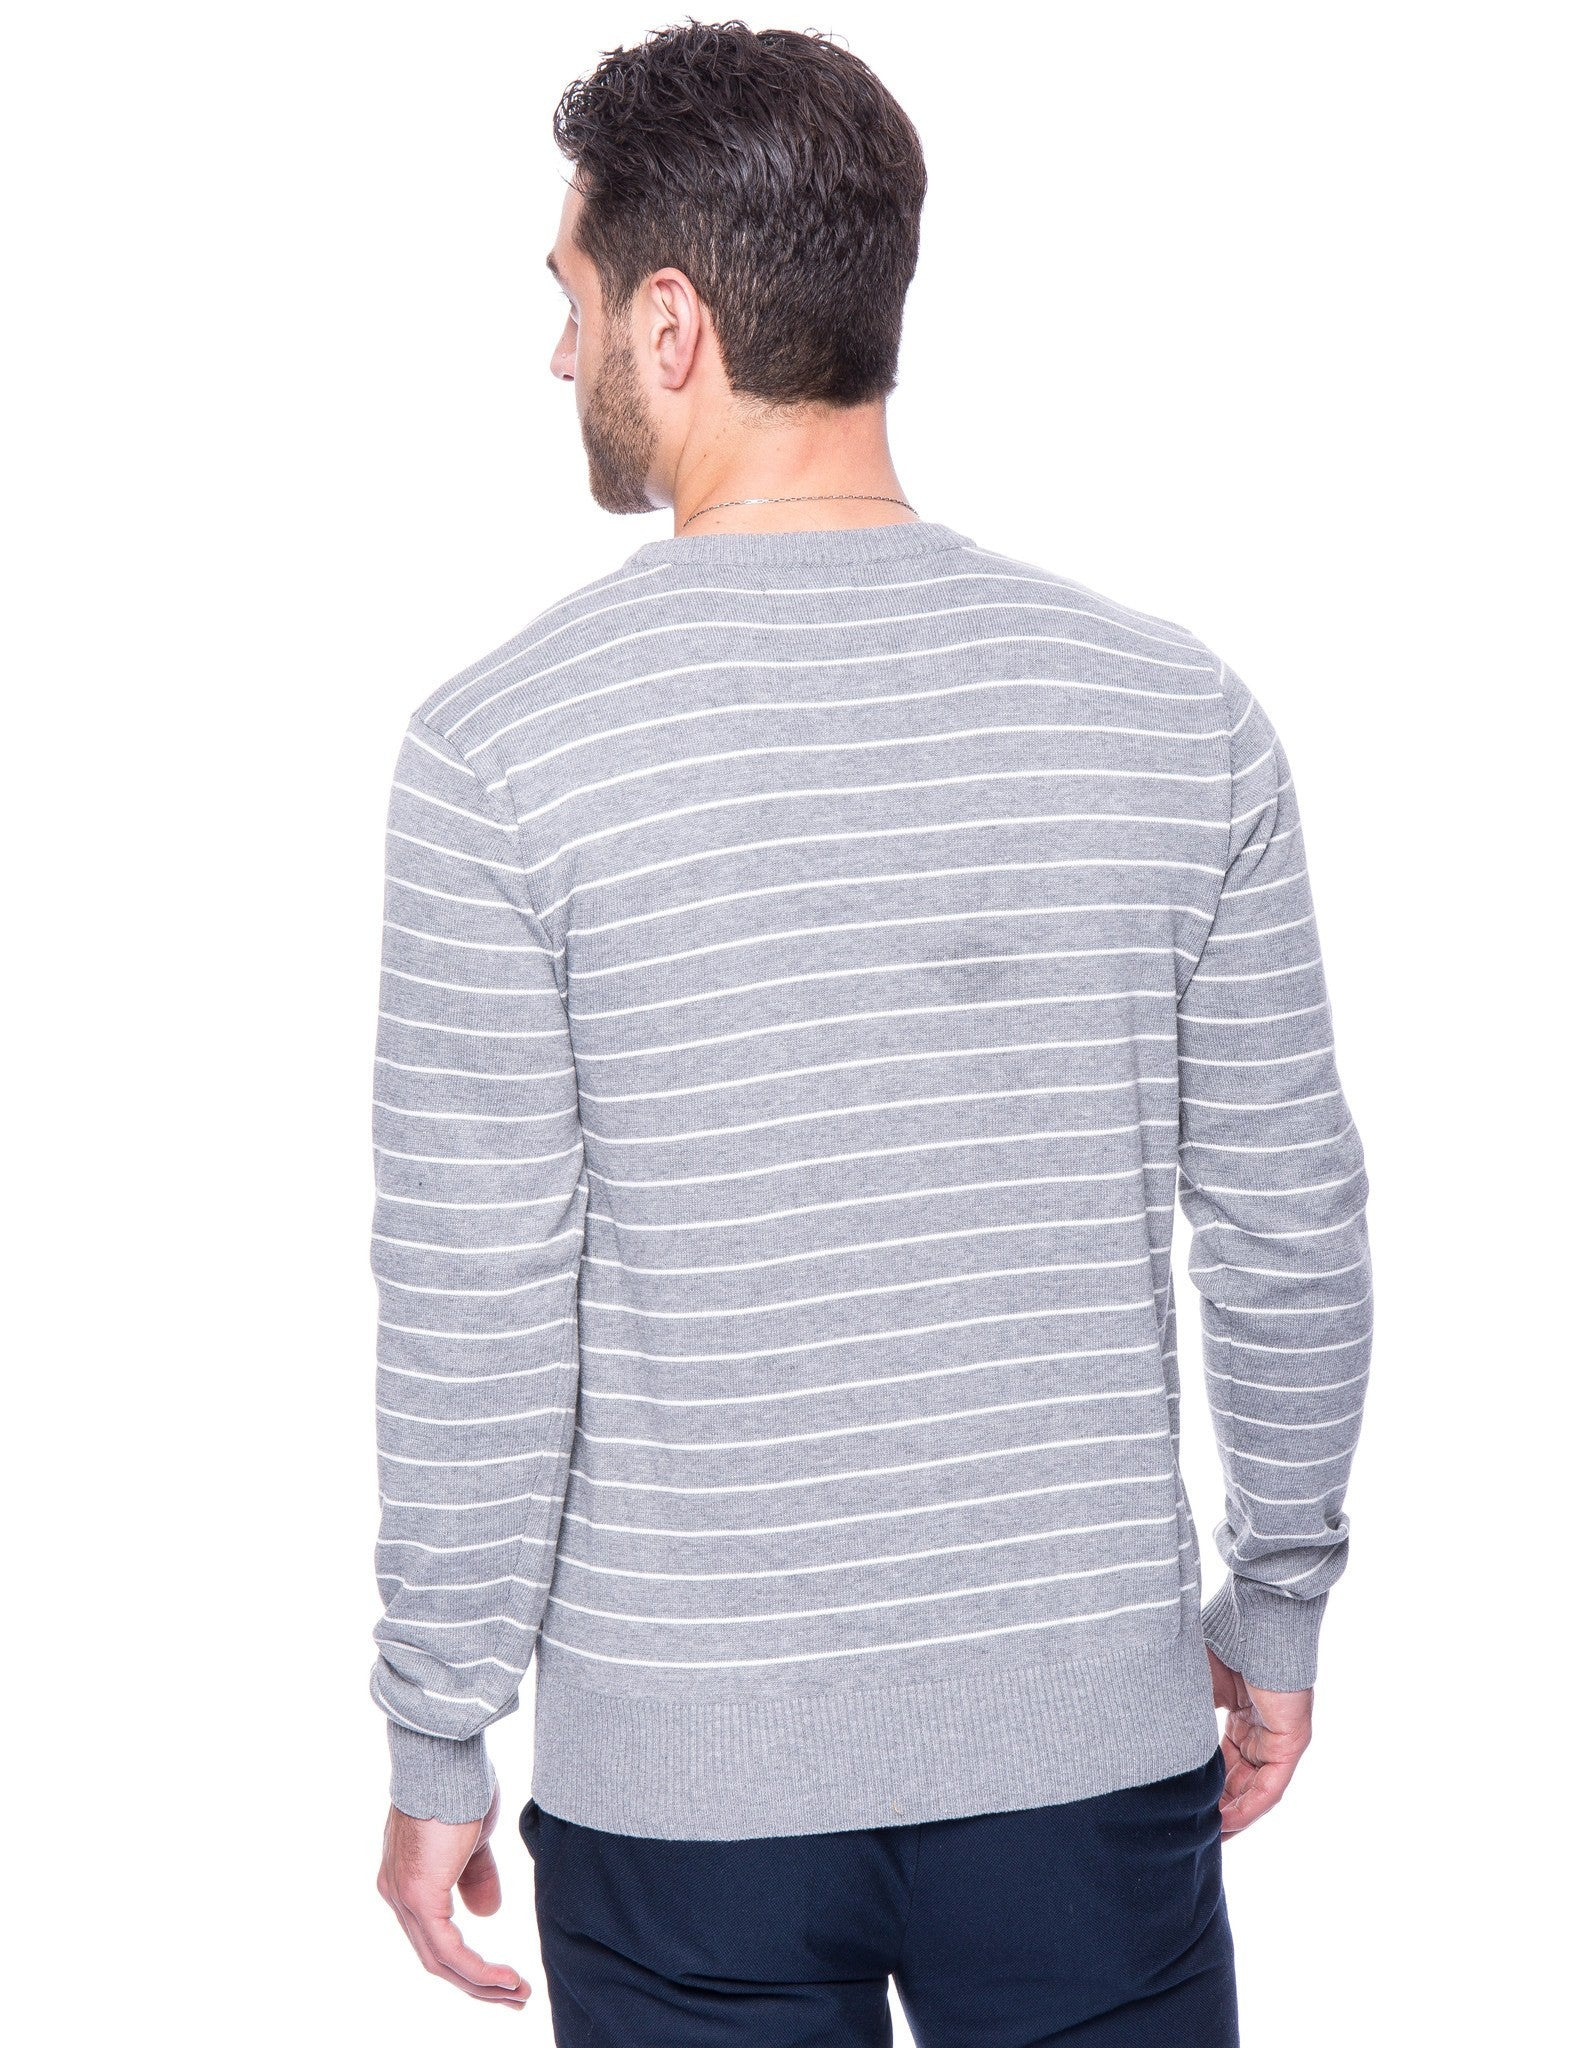 Stripes Heather Grey/Ivory